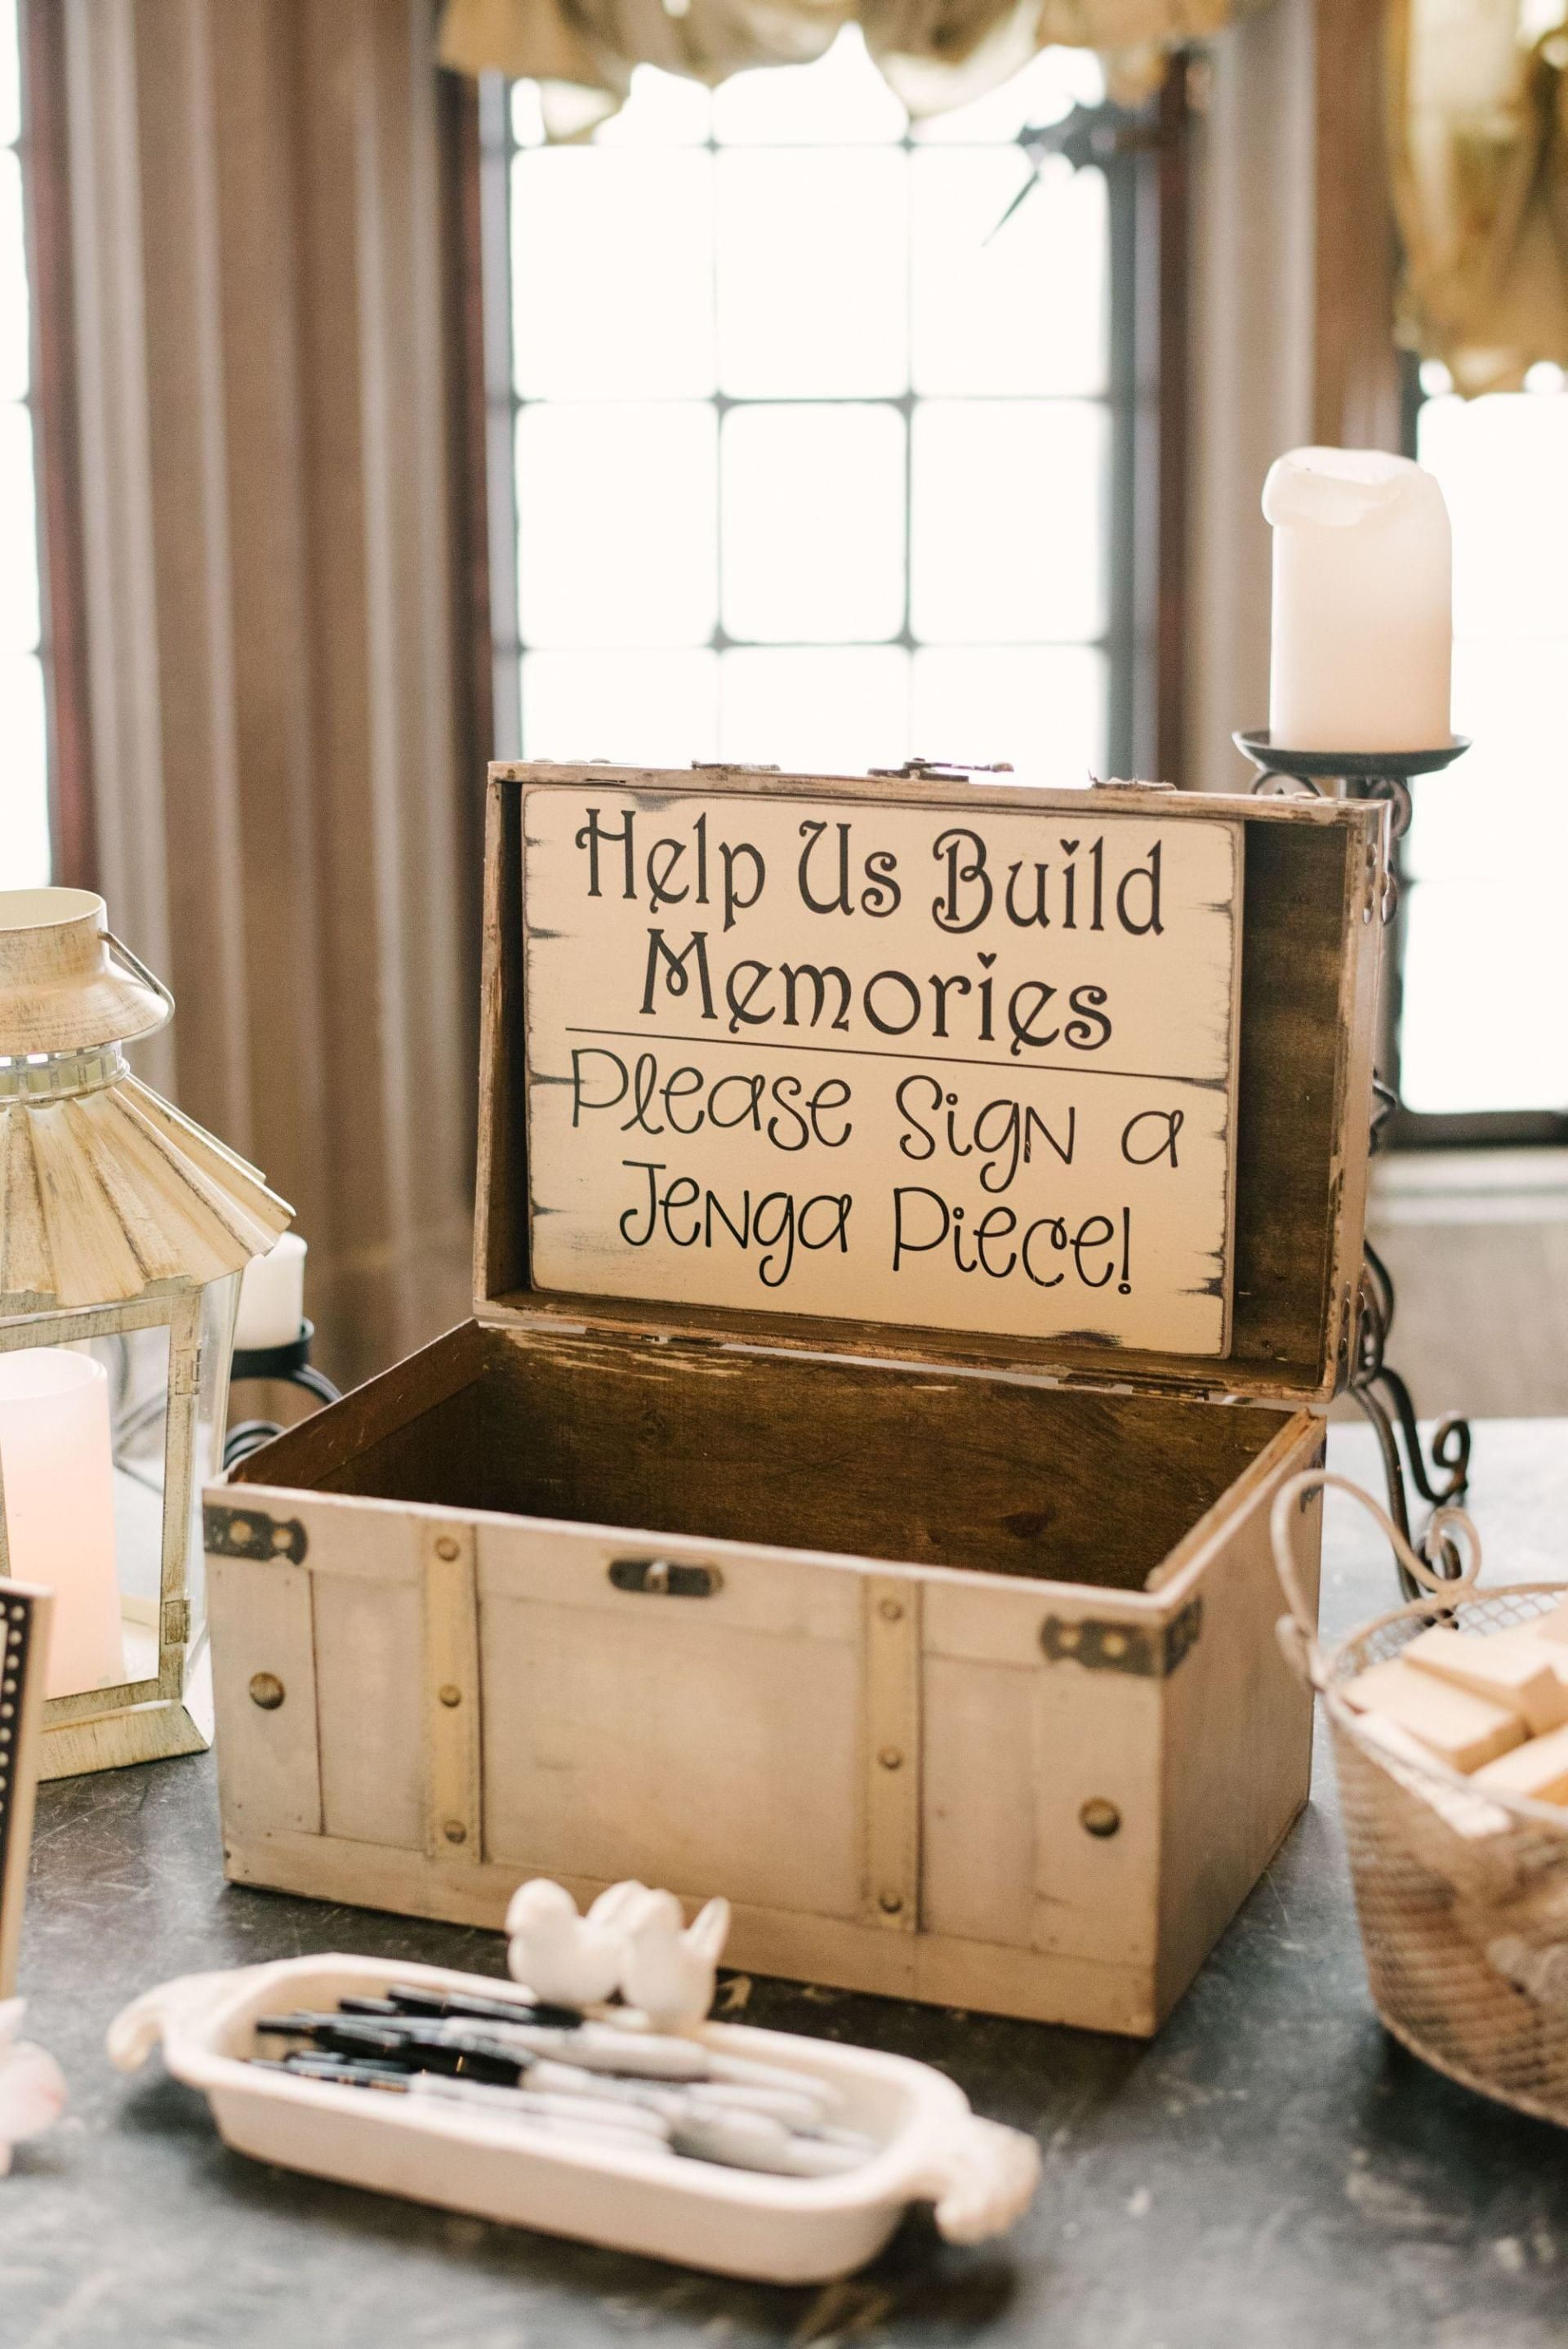 The smarter way to wed fun wedding reception ideas jenga and help us build memories sing shabby chic box ask guests to fun wedding reception ideaswedding junglespirit Images